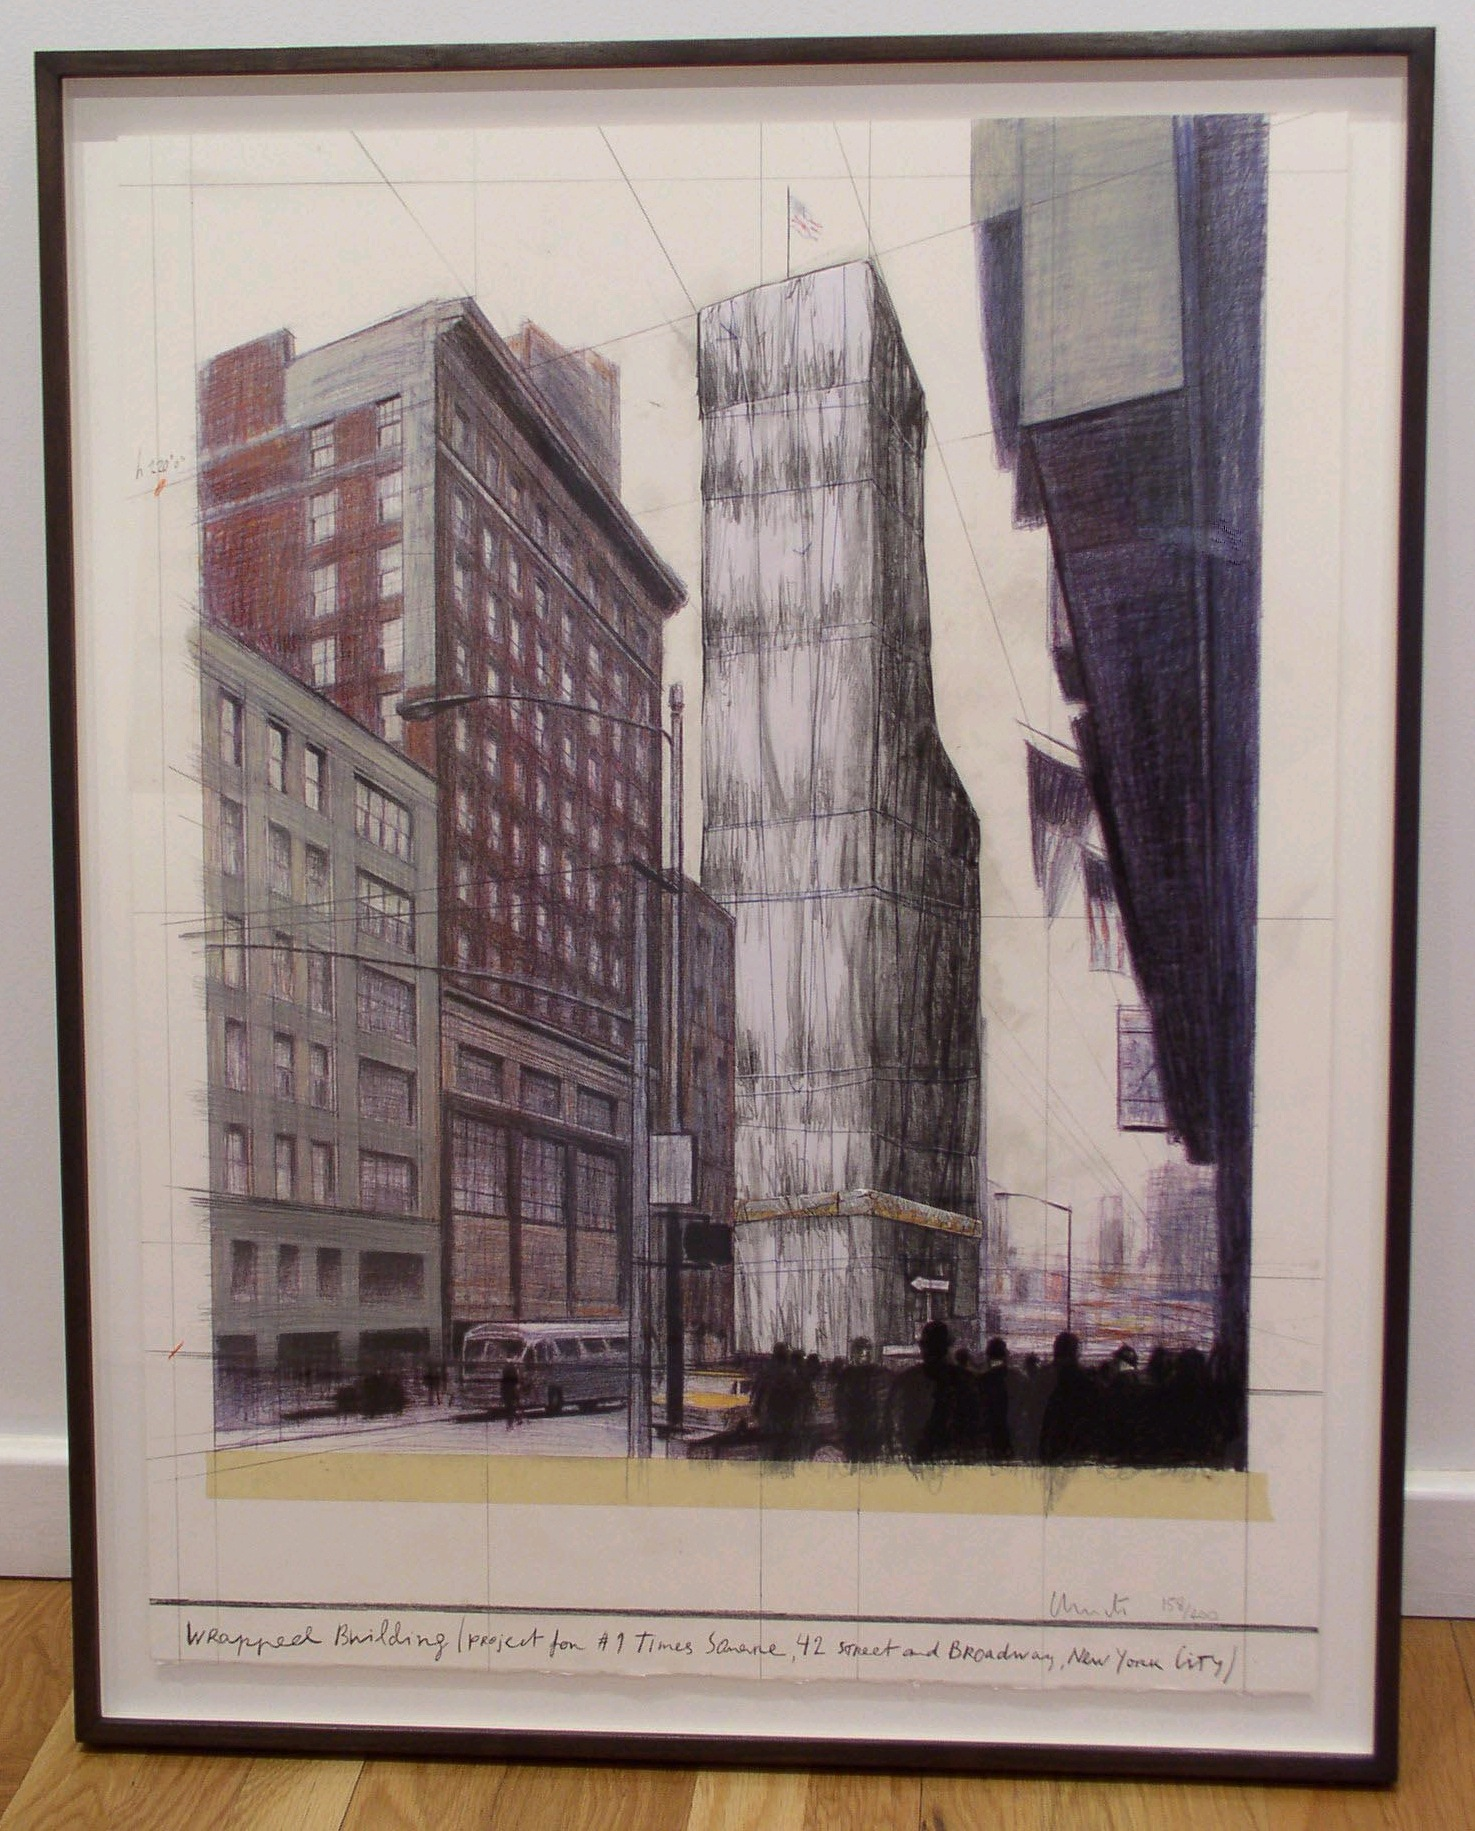 Wrapped Building (Project for #1 Times Square, 42 Street and Broadway, New York City)